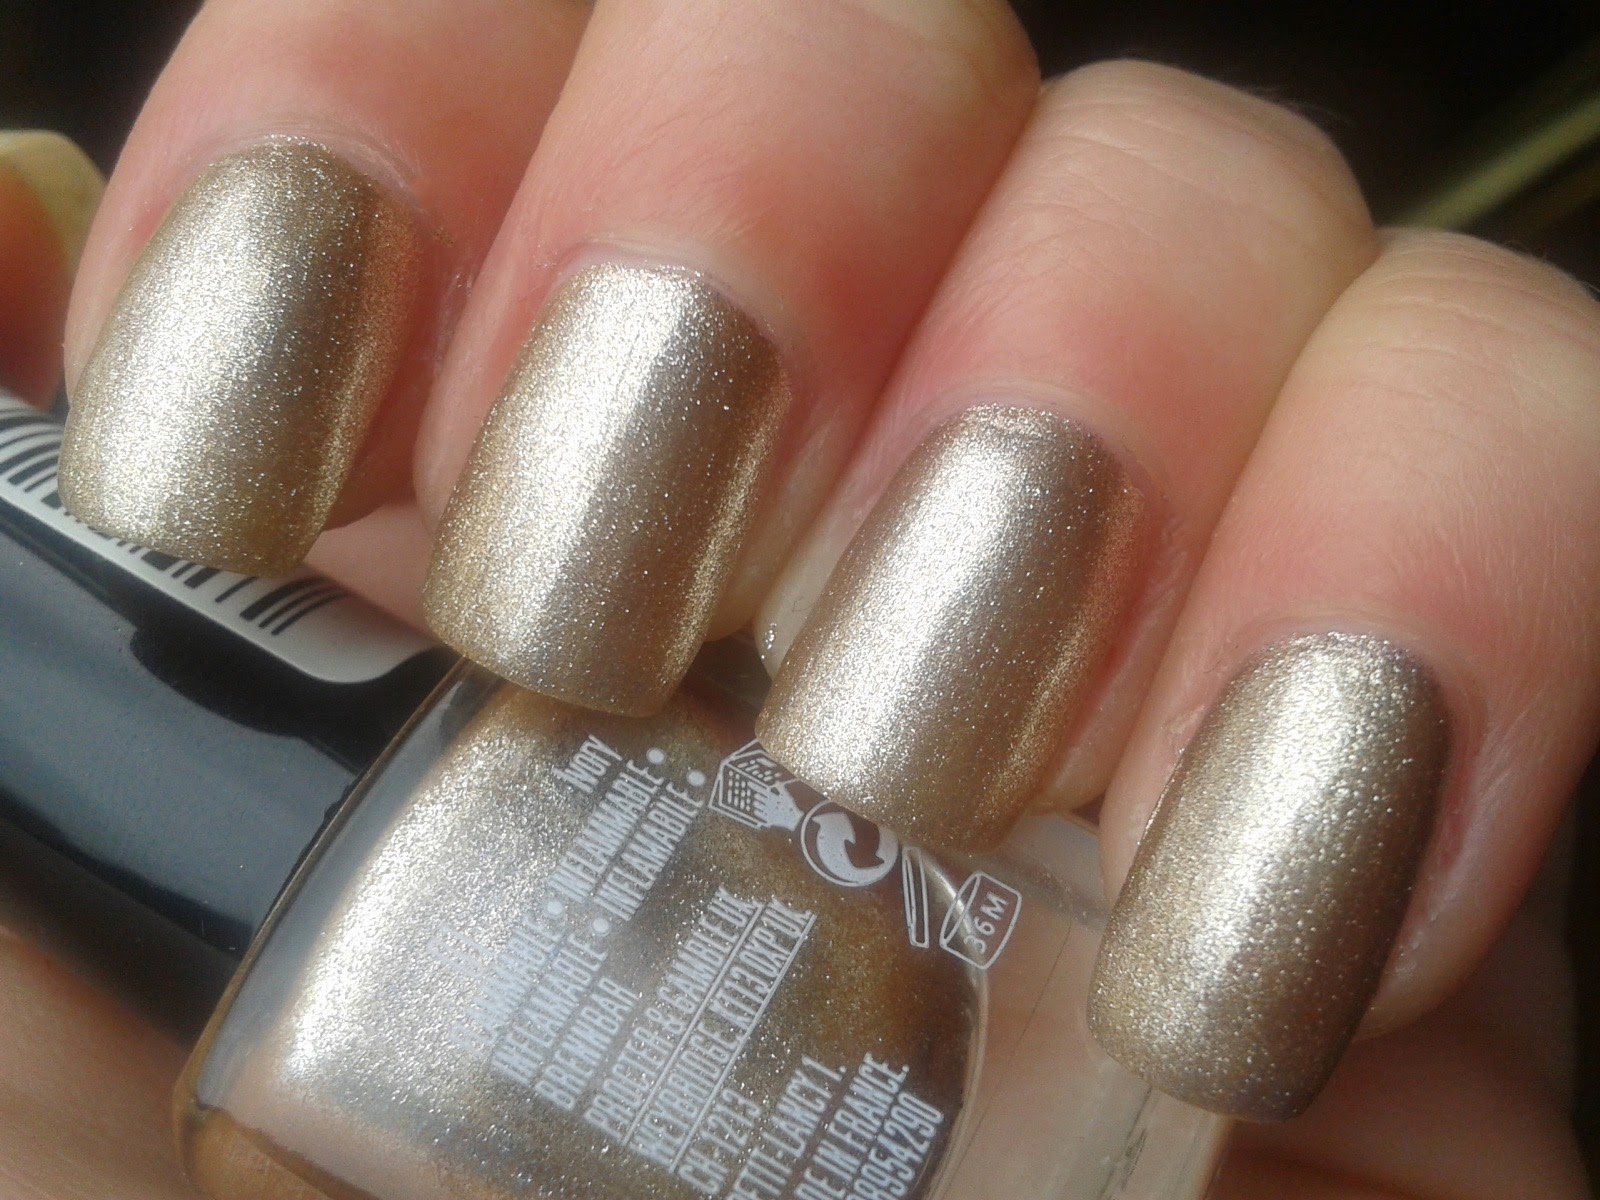 MaxFactor-Ivory-maxeffect-nail-polish-swatch-picture